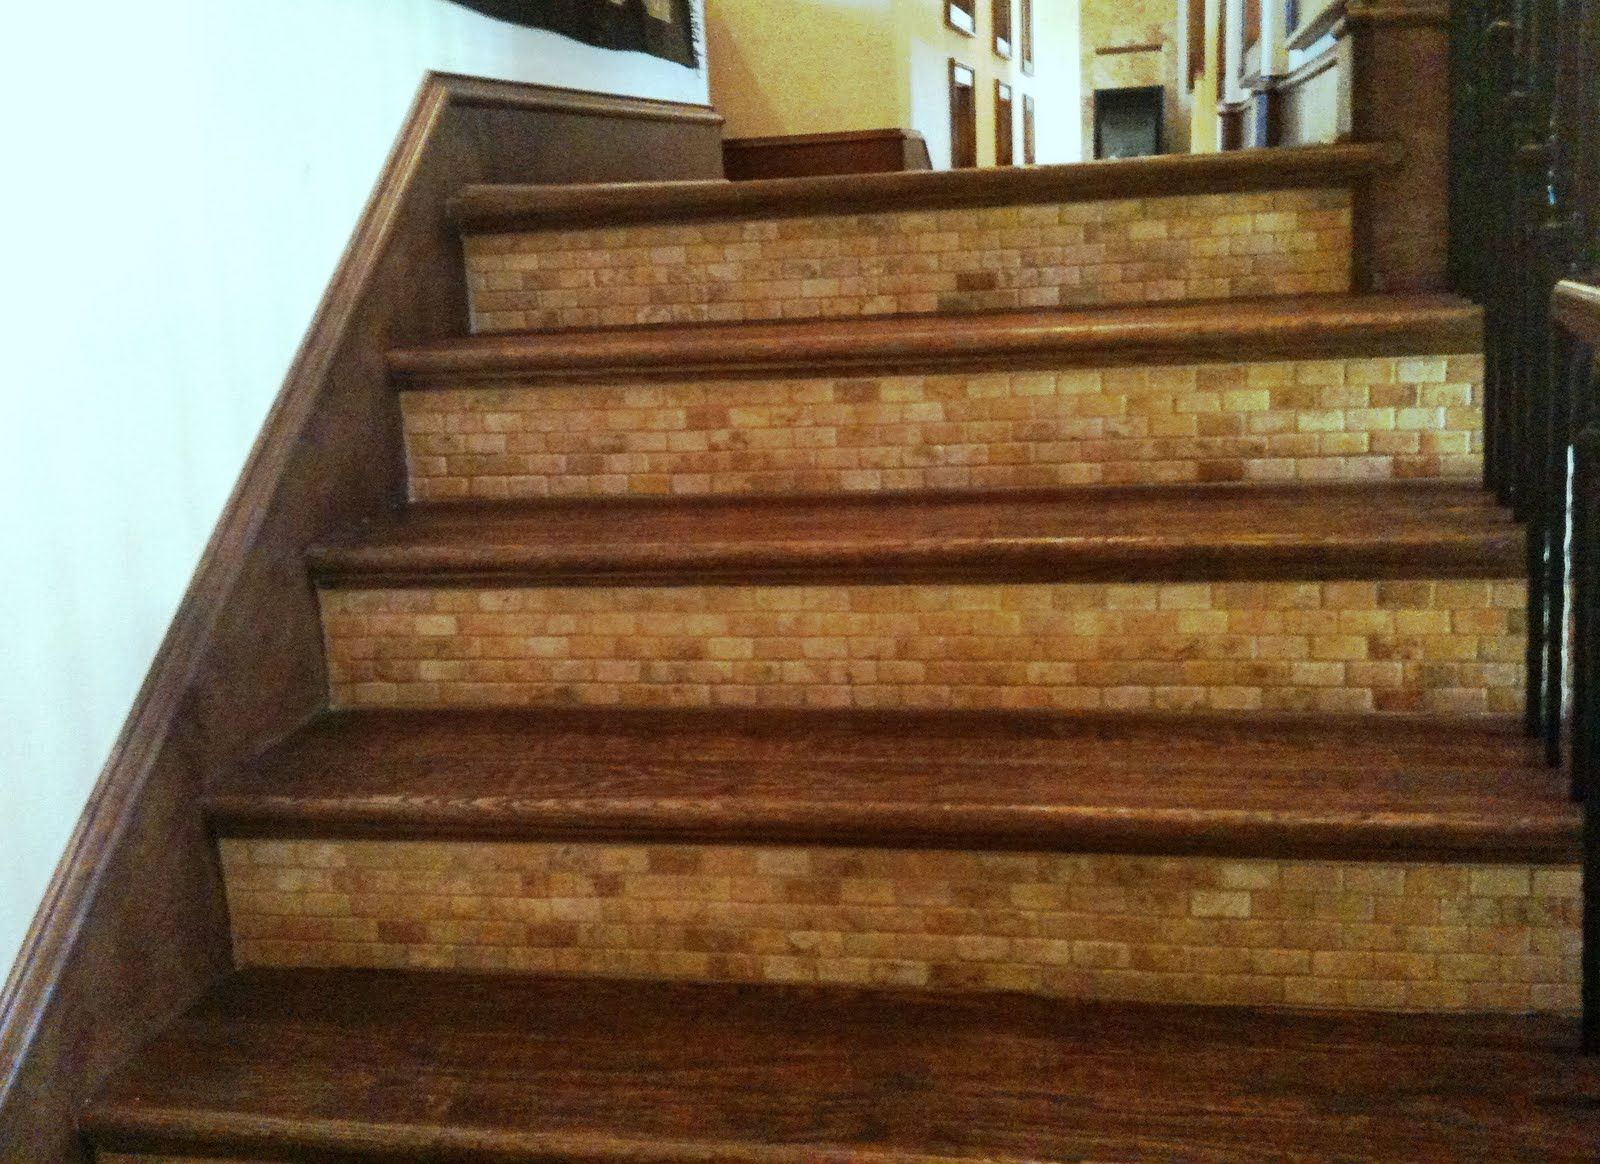 Best Spruce Up Your Stairs Tile Stairs Stairs Design Wood Stairs 640 x 480